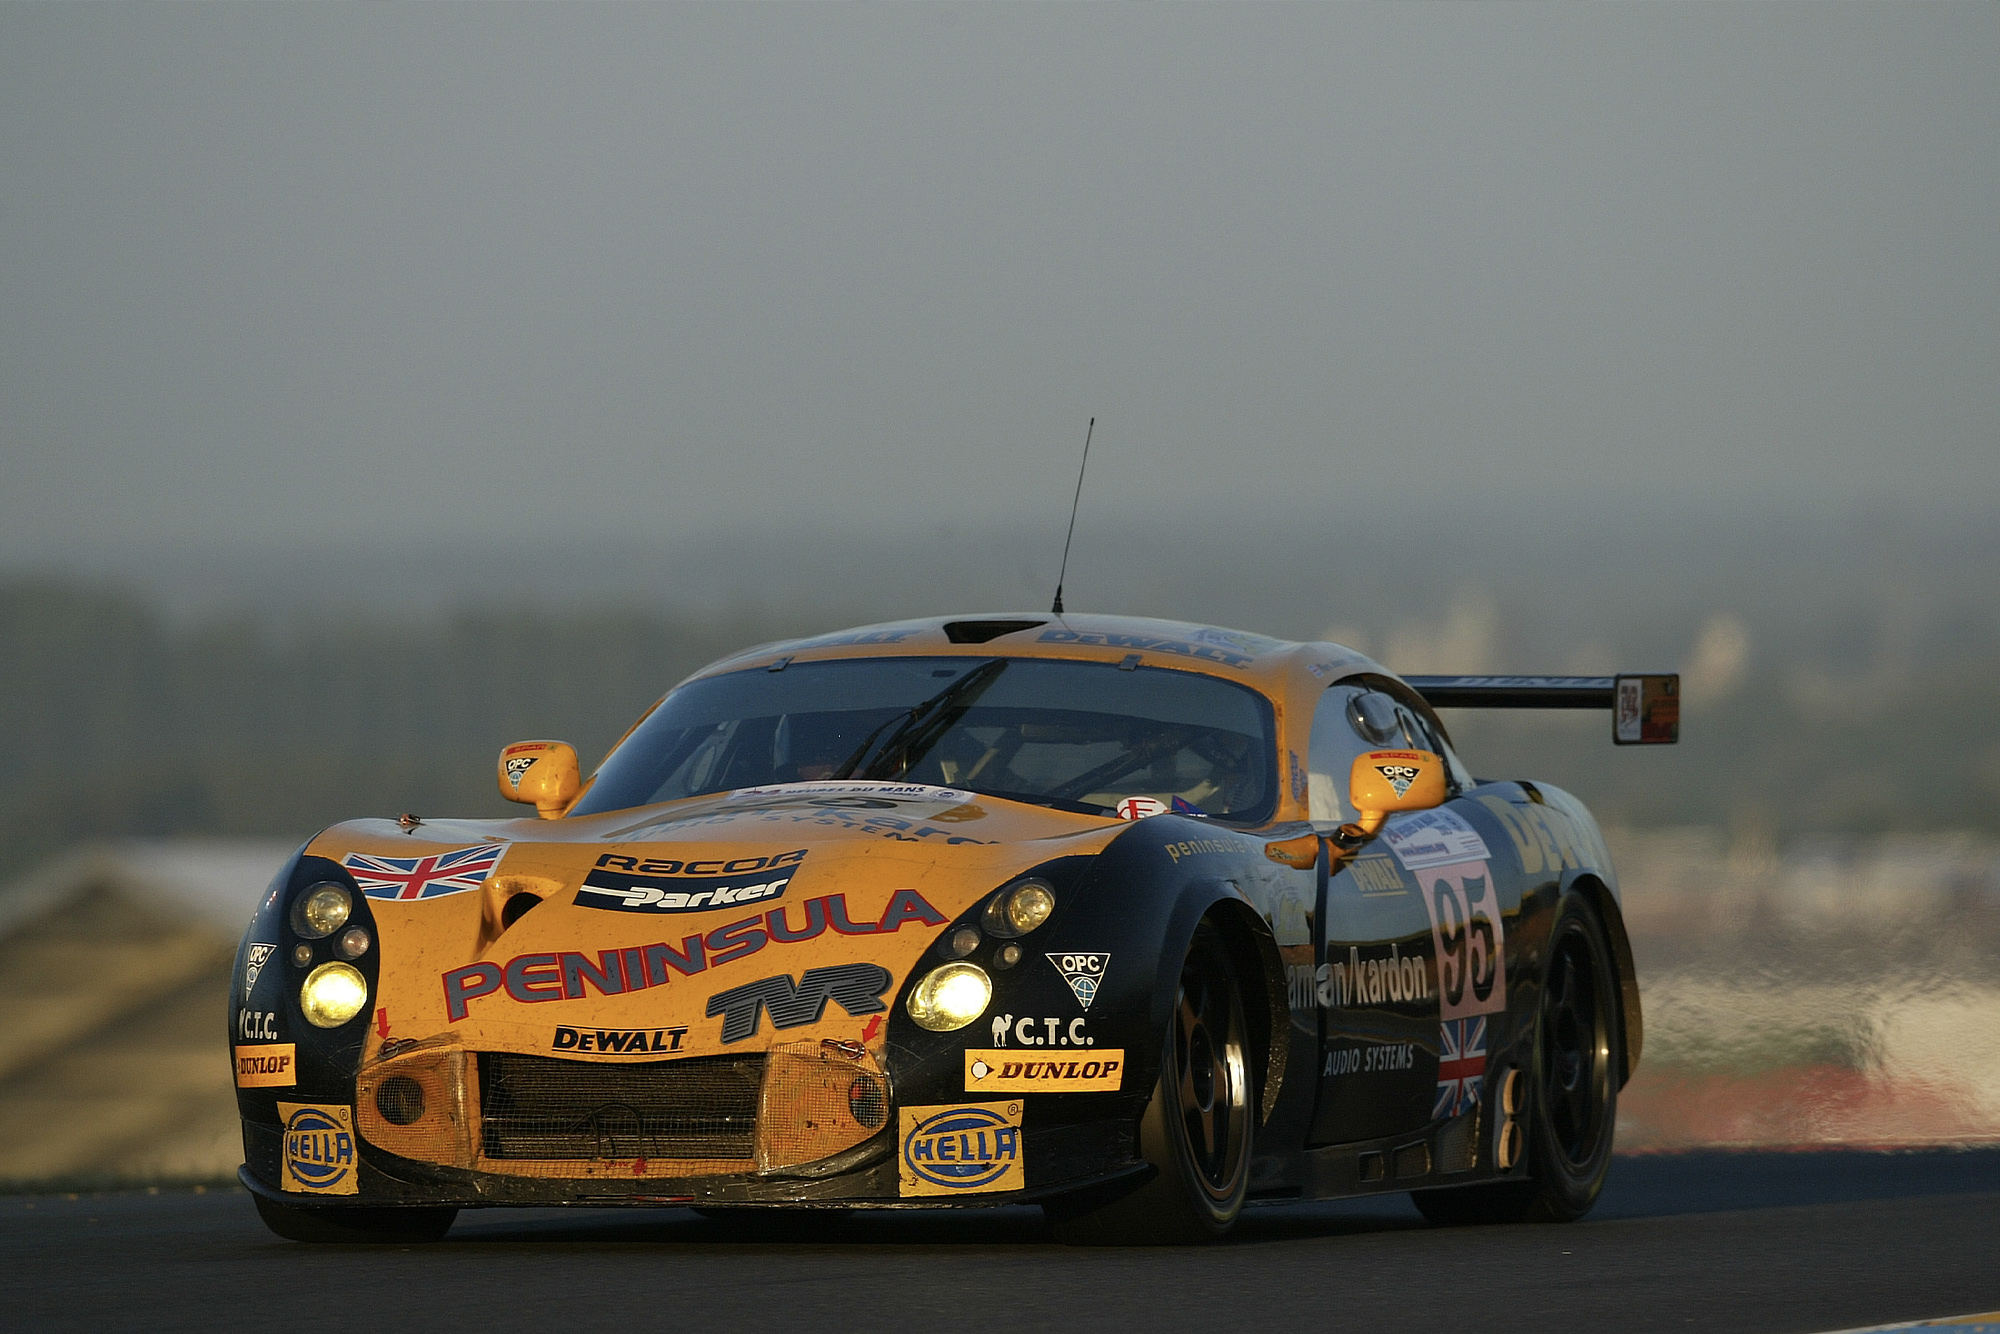 No 95 TVR Tuscan T400R at the 2005 Le Mans 24 Hours